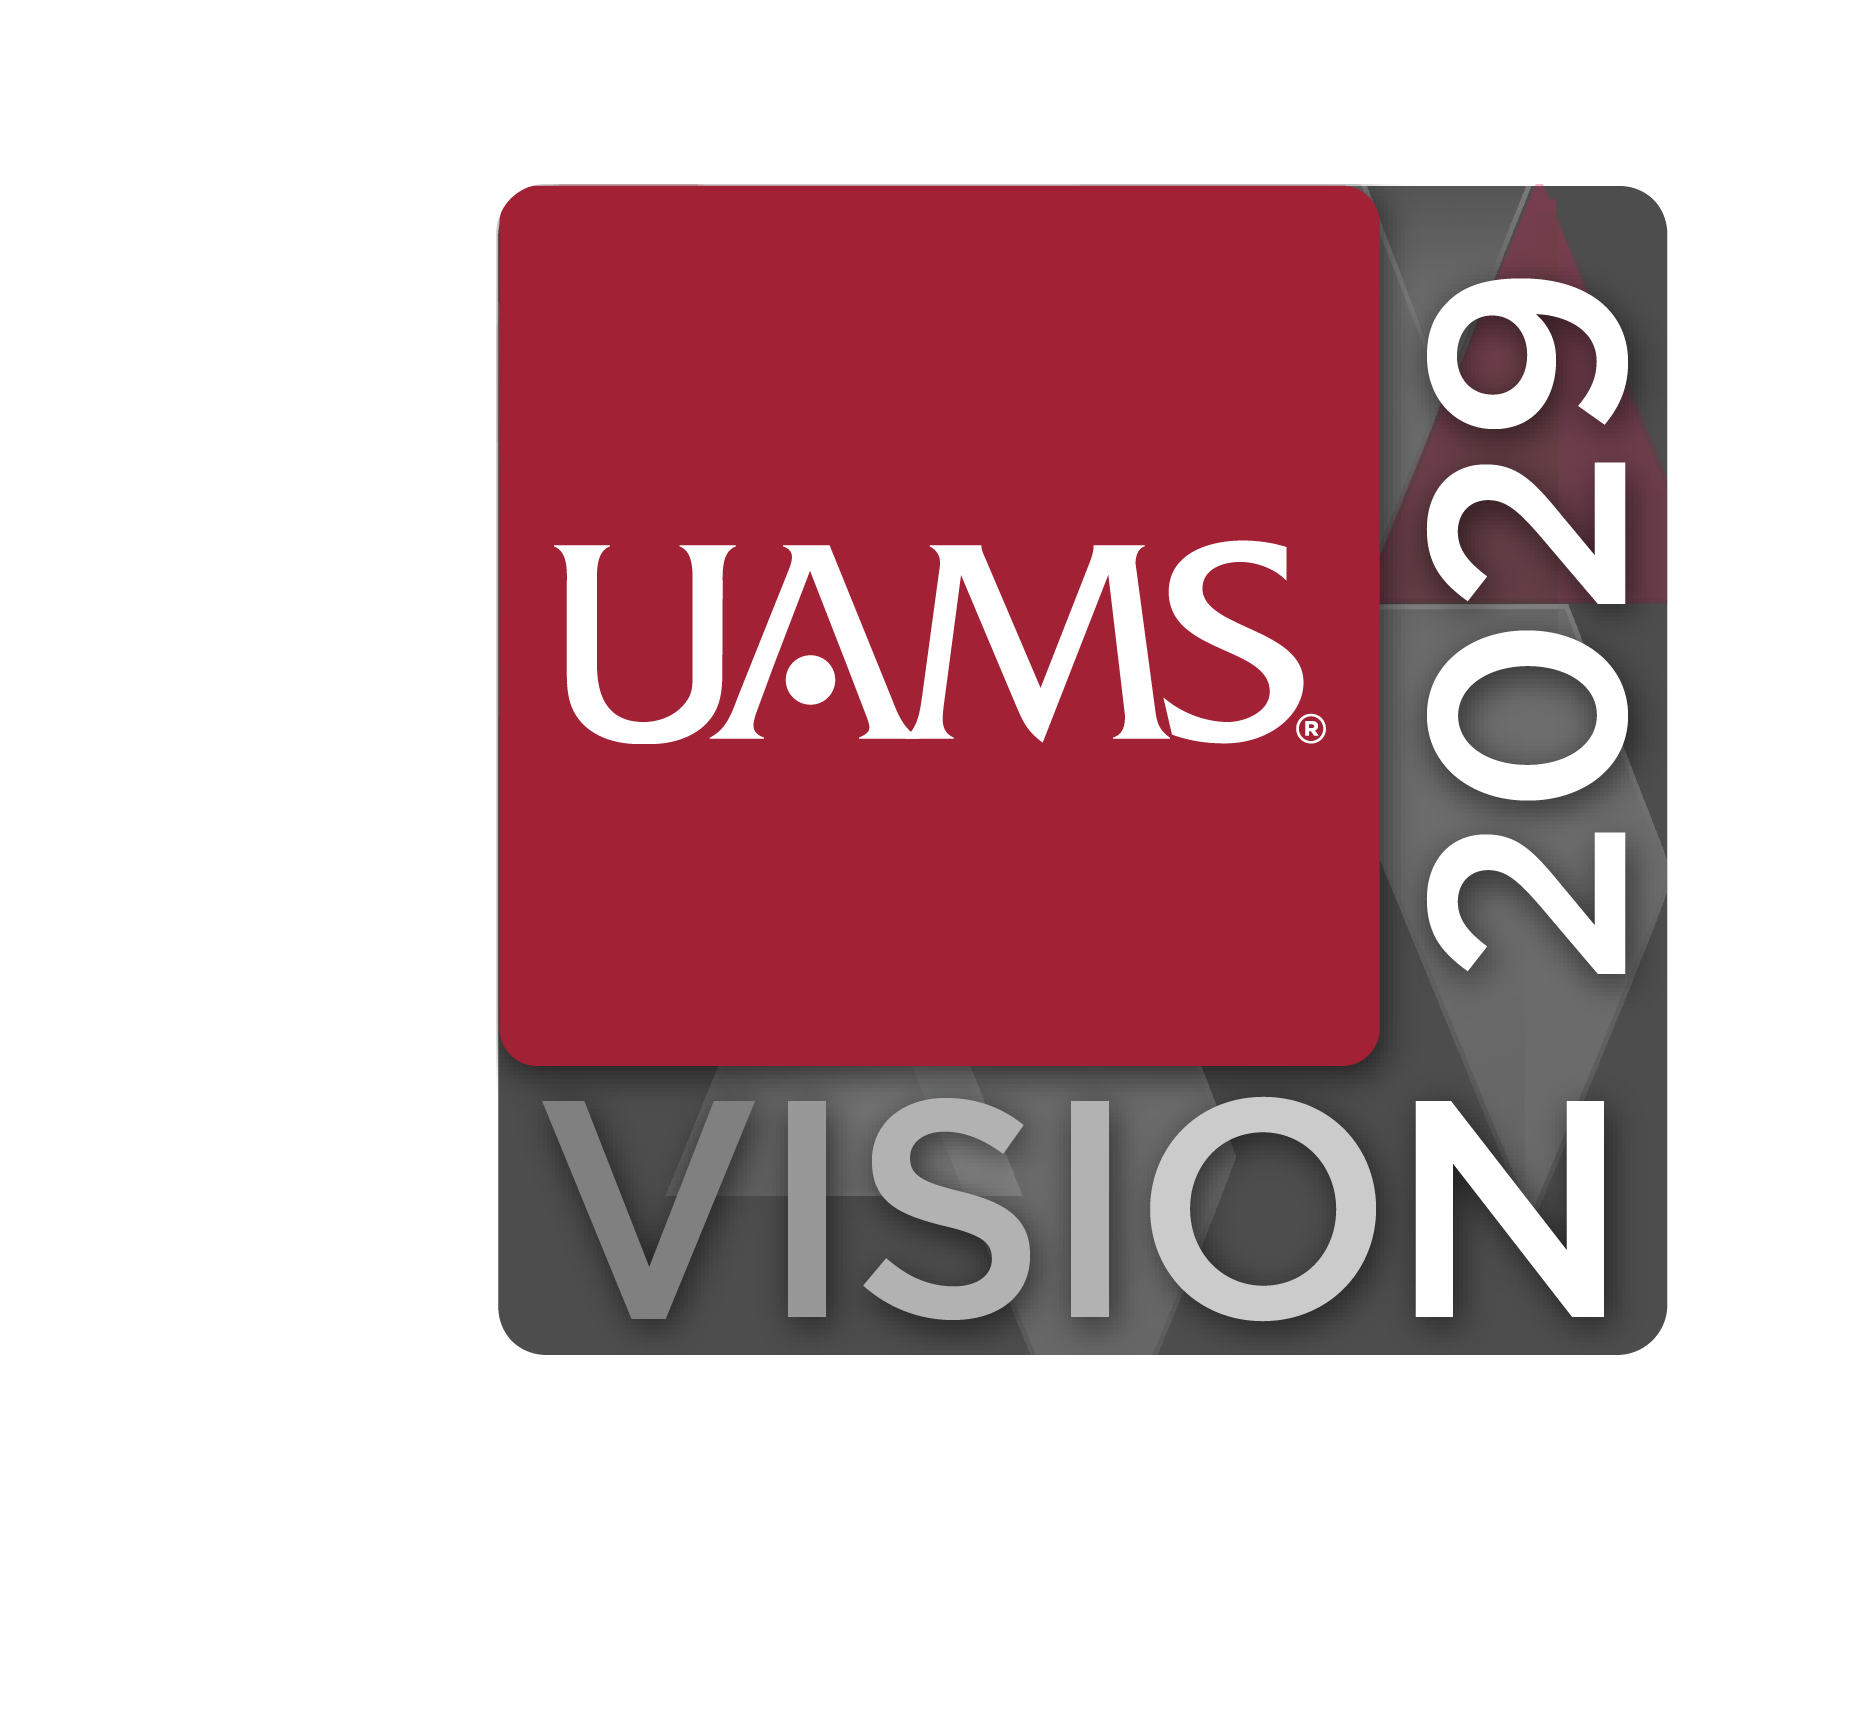 UAMS Vision: By 2029, UAMS will lead Arkansas to be the.